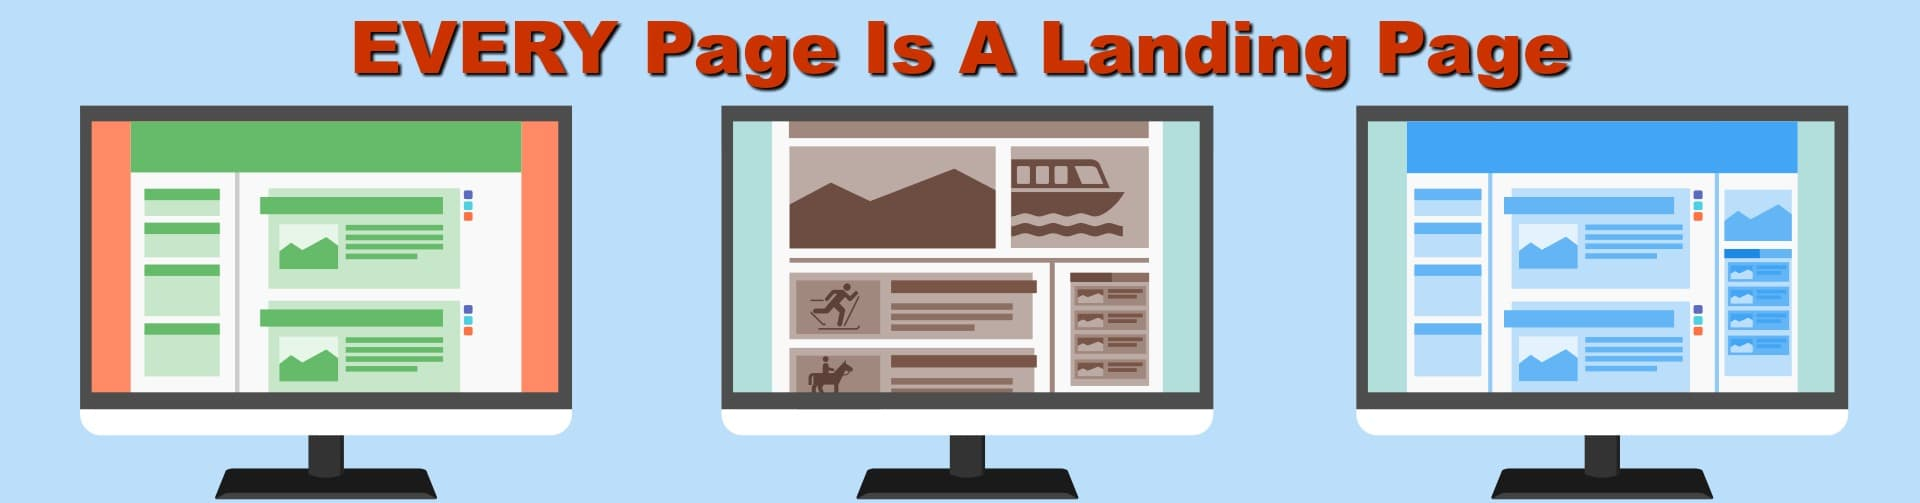 Every Page Is A Landing Page